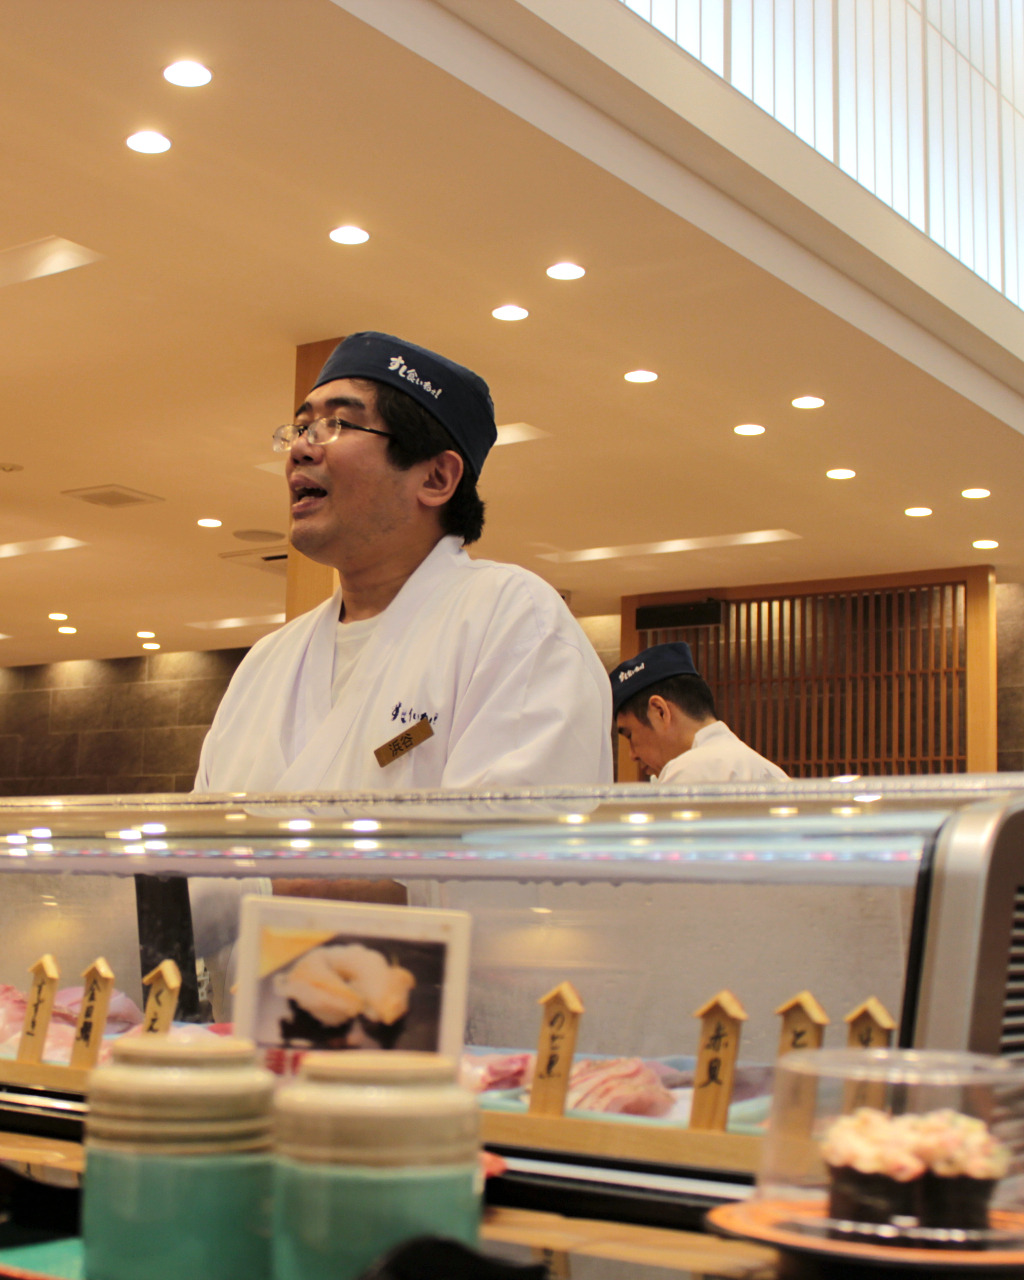 Chef at Sushi Kuine, a sushi train restaurant in Kanazawa, Japan